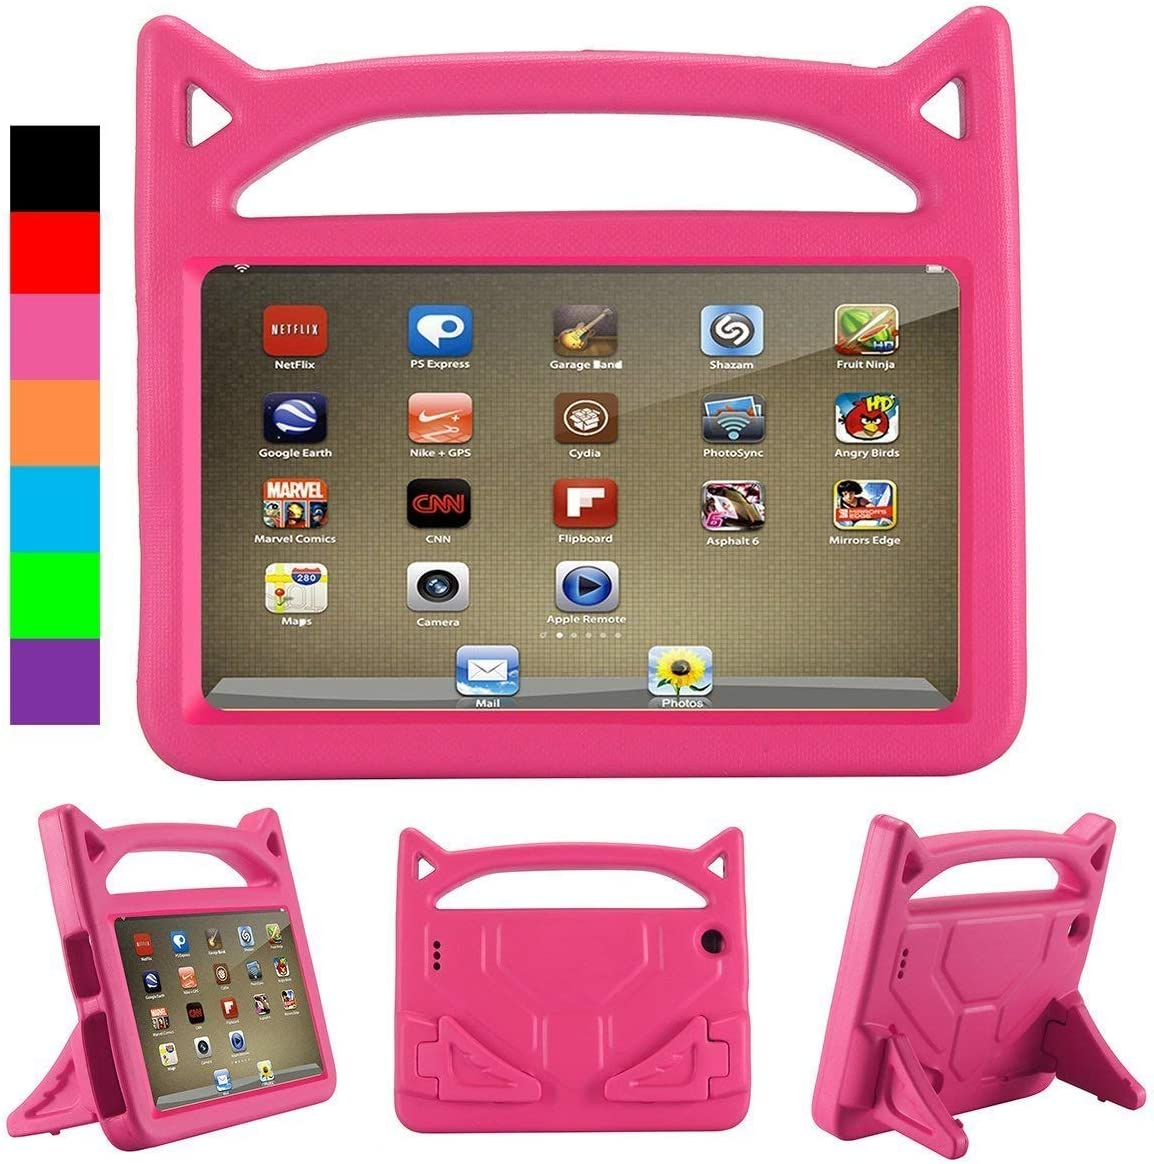 All New Tablet 8 2018 Case, 8 Inch Tablet Kids Case - Riaour Kid-Proof Light Weight Kids Friendly Cover Case with Handle Stand for 8 Inch Tablet(Compatible with 2018/2017/2016 Release) - Pink